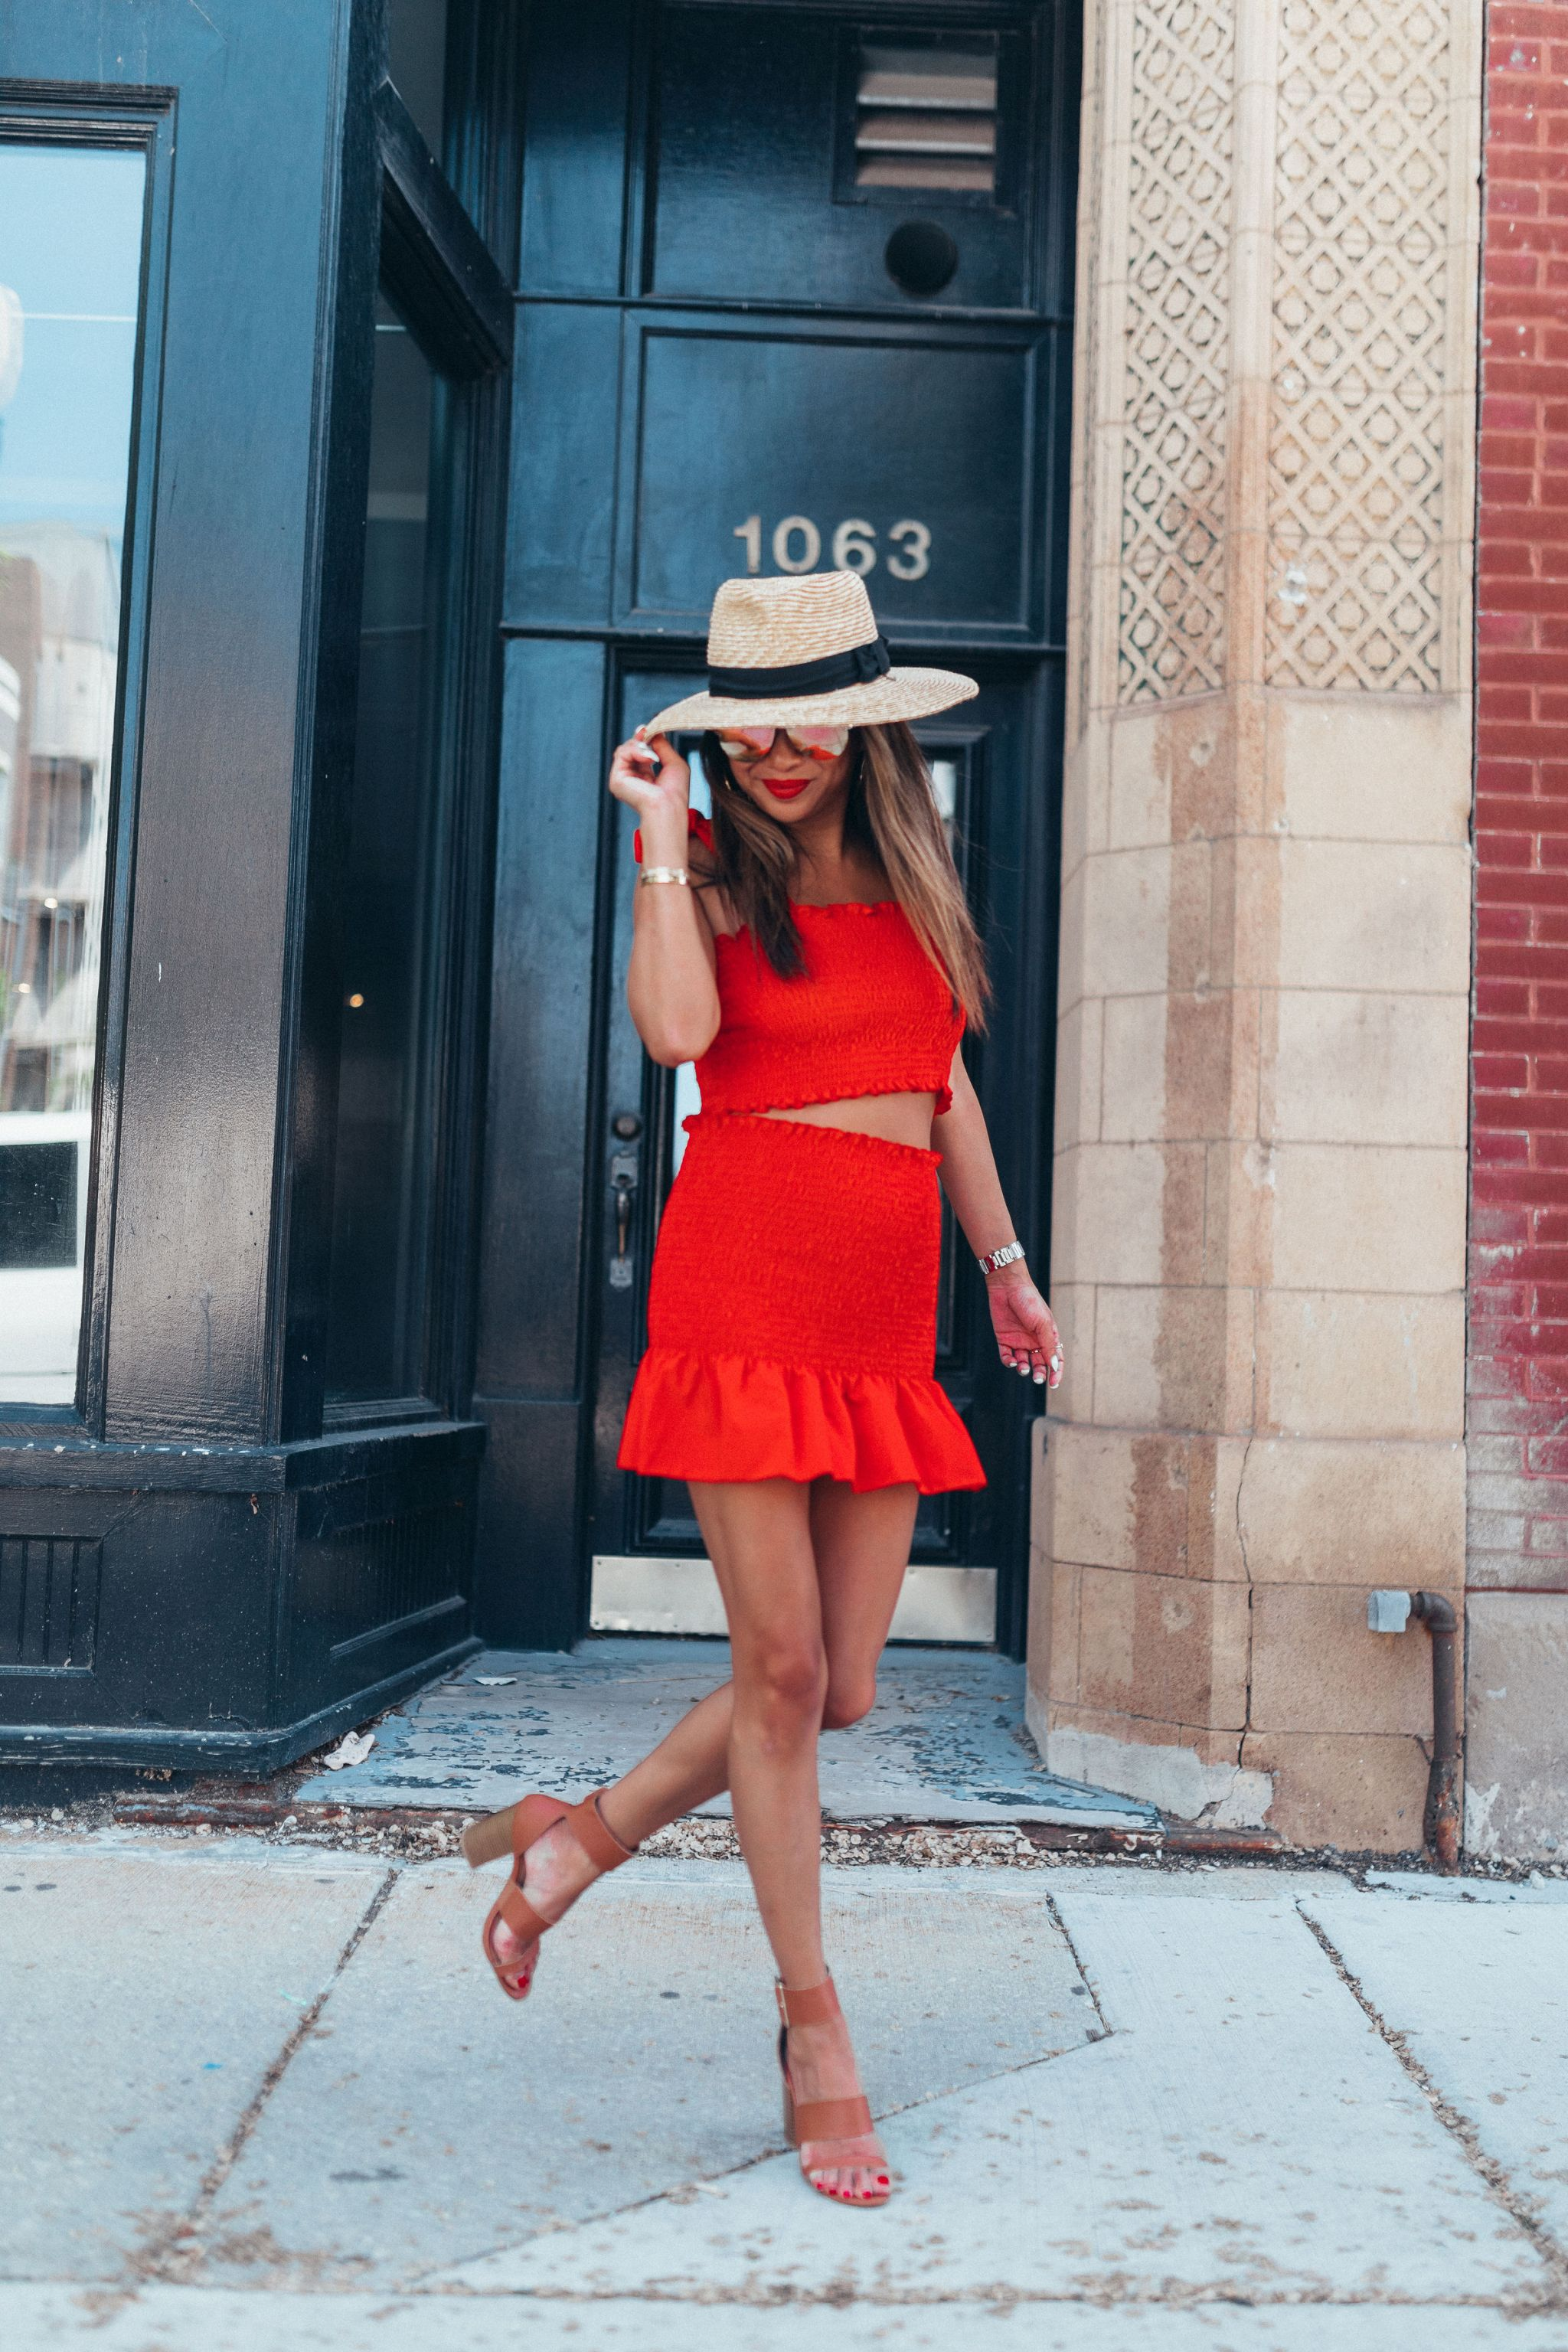 Amazon 2 piece outfit set, summer fashion finds for a steal, chicago summer style, best fashion finds amazon, jennifer worman, chicago lifestyle blogger, summer fashion for a steal, smocked skirt, smocked top, brixton hat